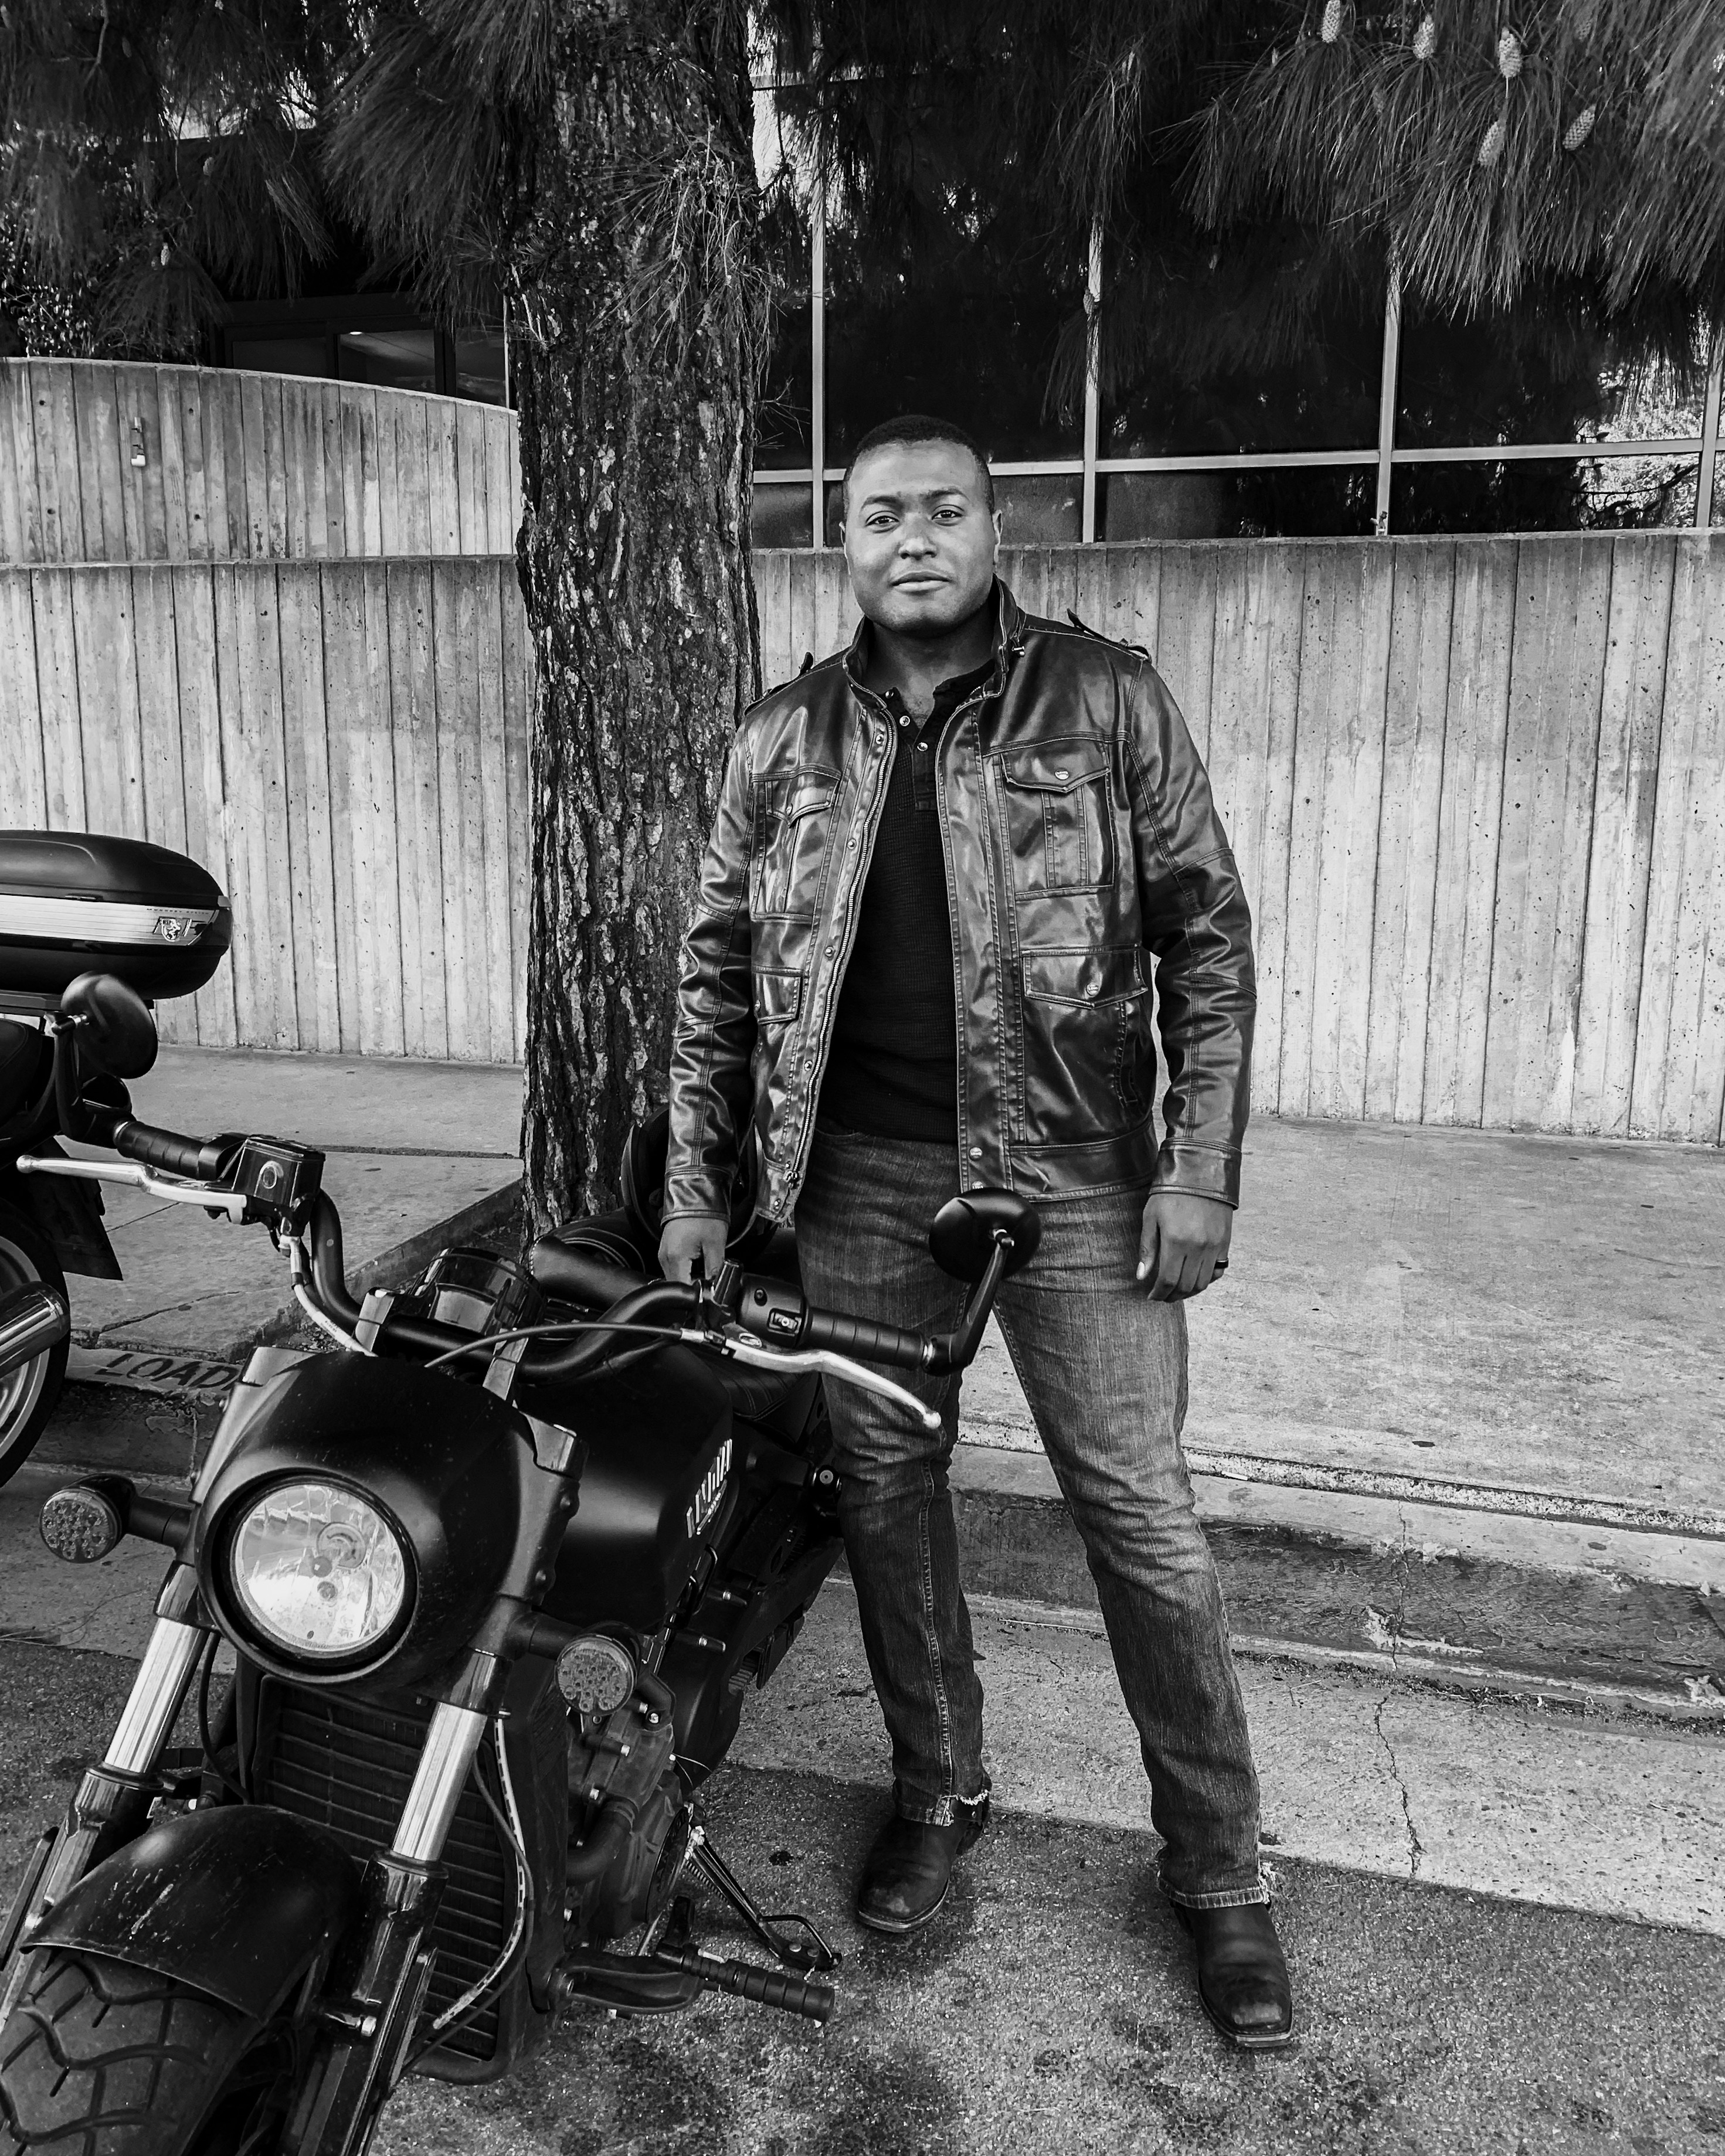 Vincent next to his Motorcycle